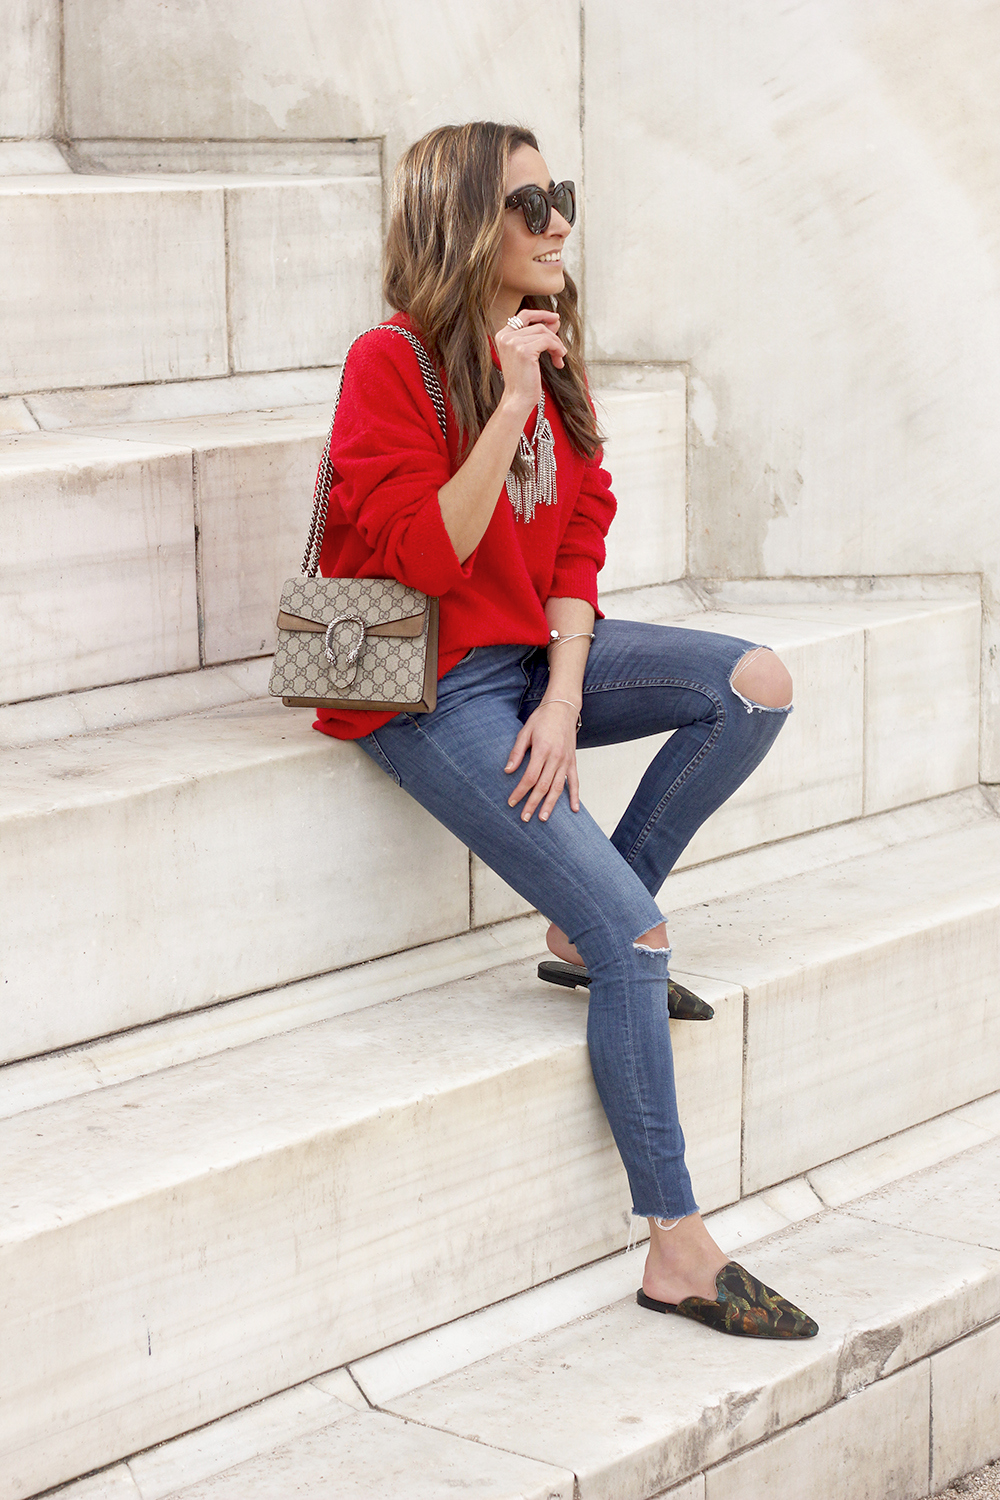 Mules Red sweater Ripped Jeans gucci bag céline sunnies fashion outfit style trend02